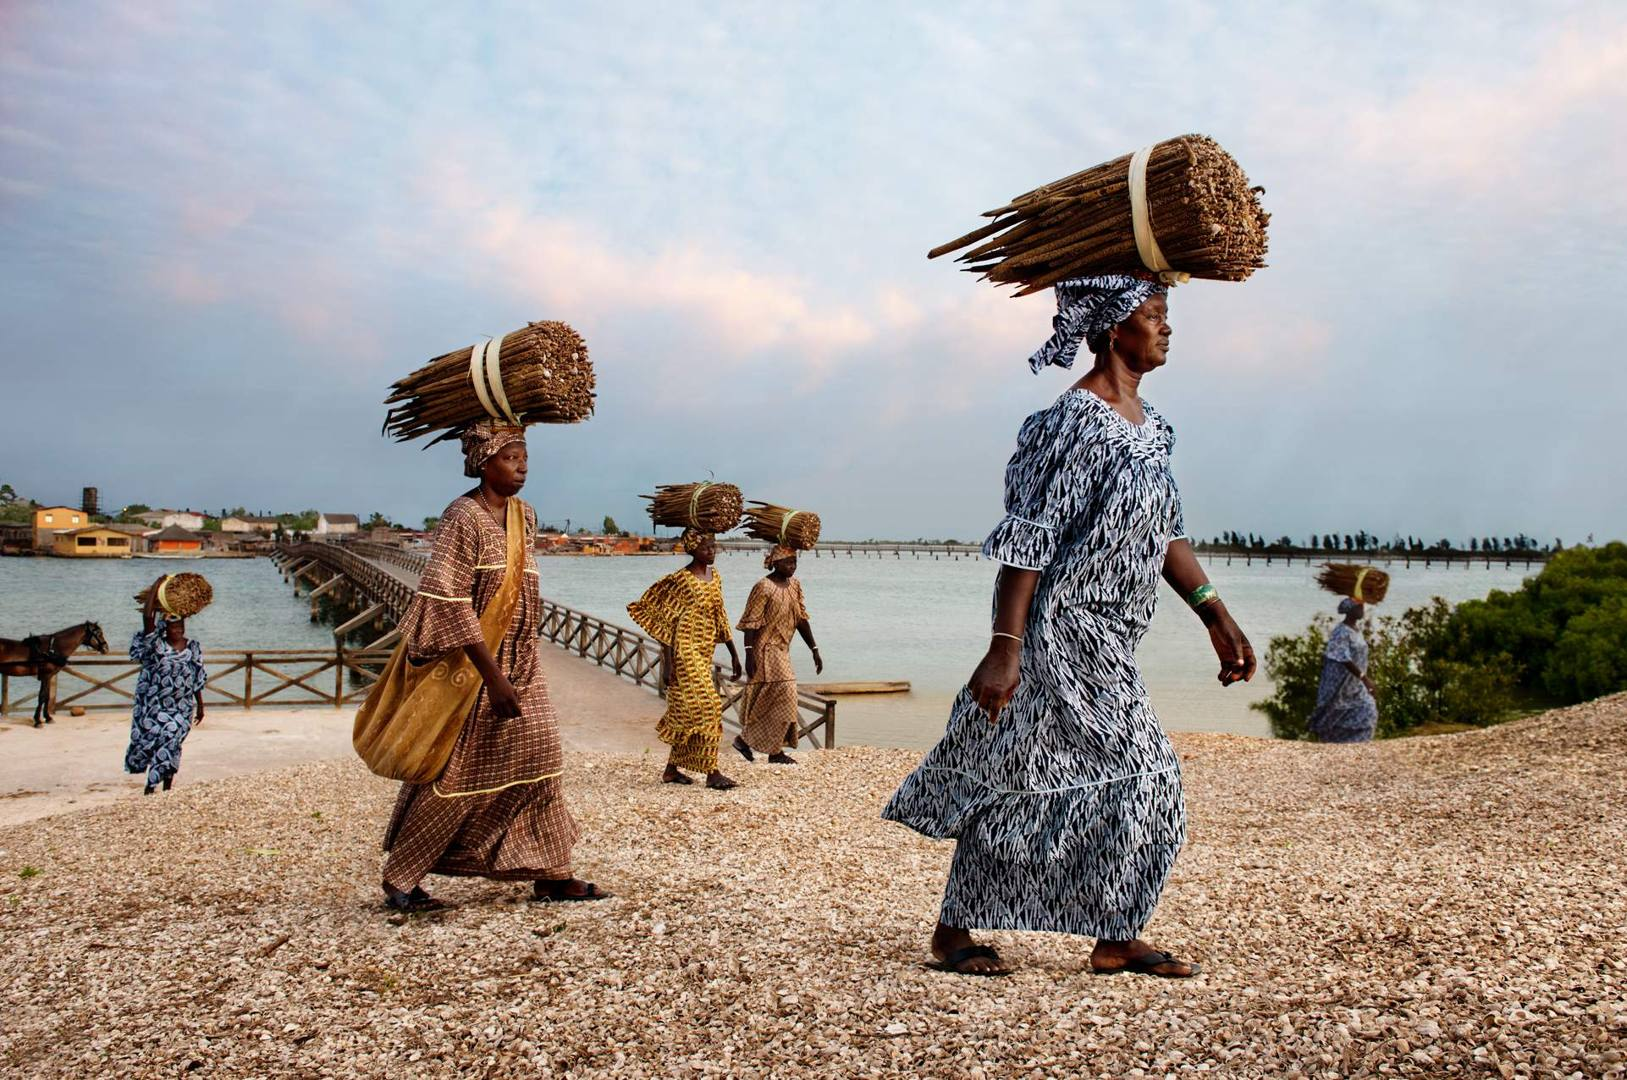 'Women of Fadiouth' - Anna Ndiaye (President of the Gie Mbel Saac Federation on Fadiouth Island in Senegal) fights to defend the quality of salted millet couscous